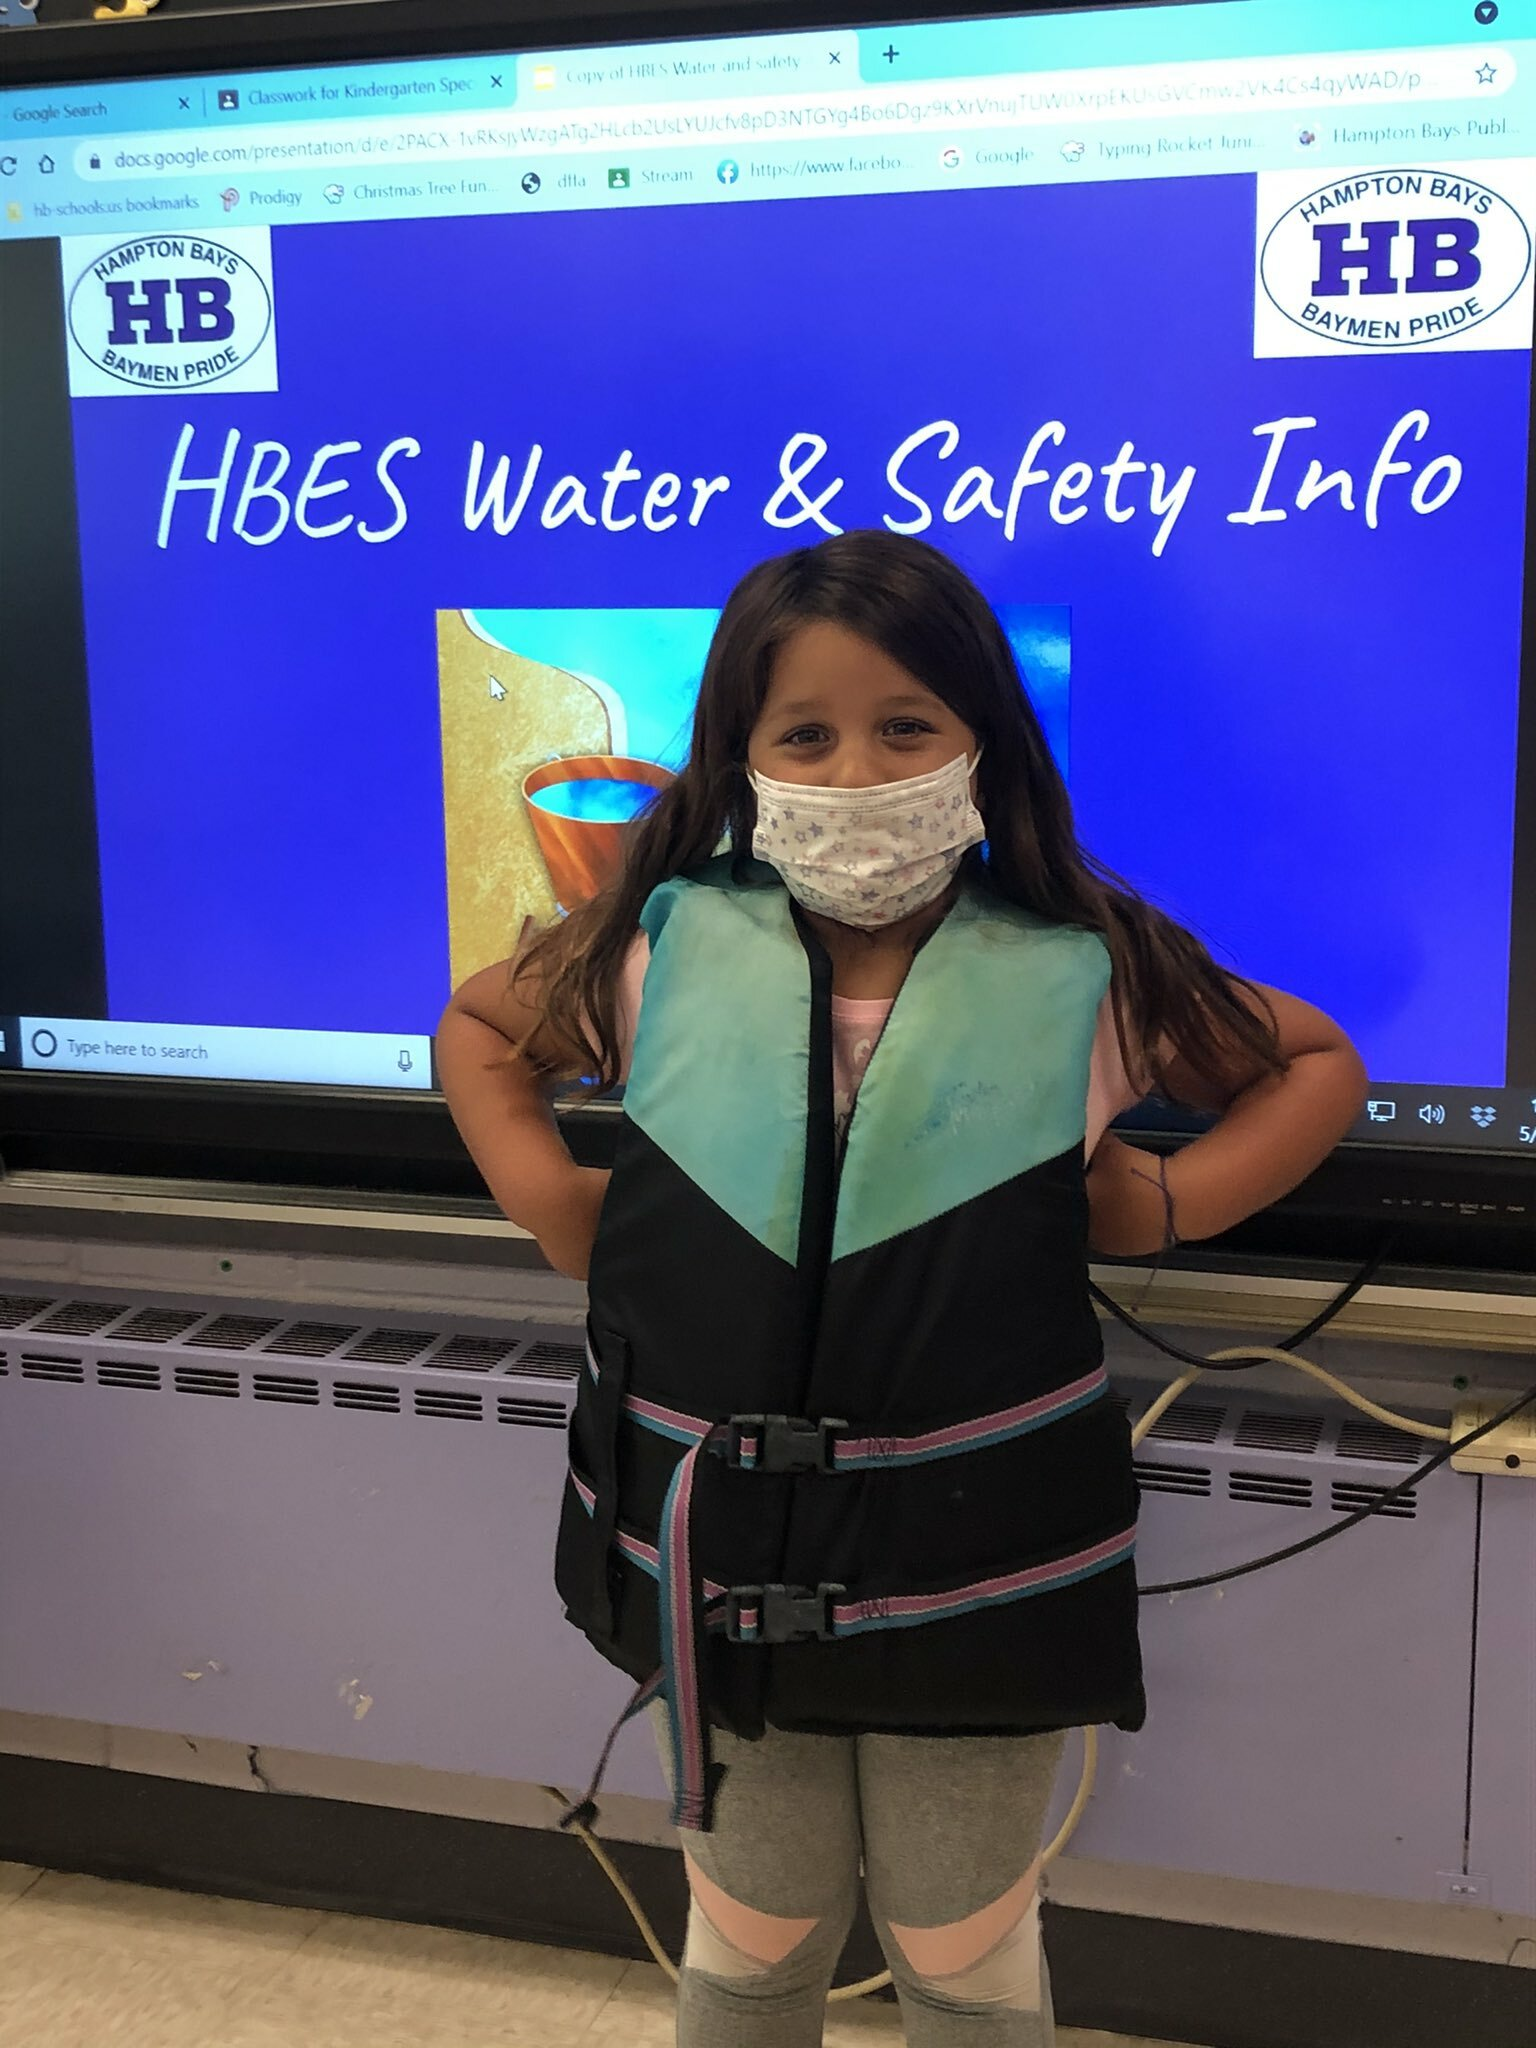 Students at Hampton Bays Elementary School received special lessons on boat and water safety through the Dominic Trionfo Memorial Fund. The nonprofit provided a variety of learning materials, including activity books and classroom kits, and engaged students in discussions about bike safety, tick safety, the importance of sunscreen and staying hydrated.